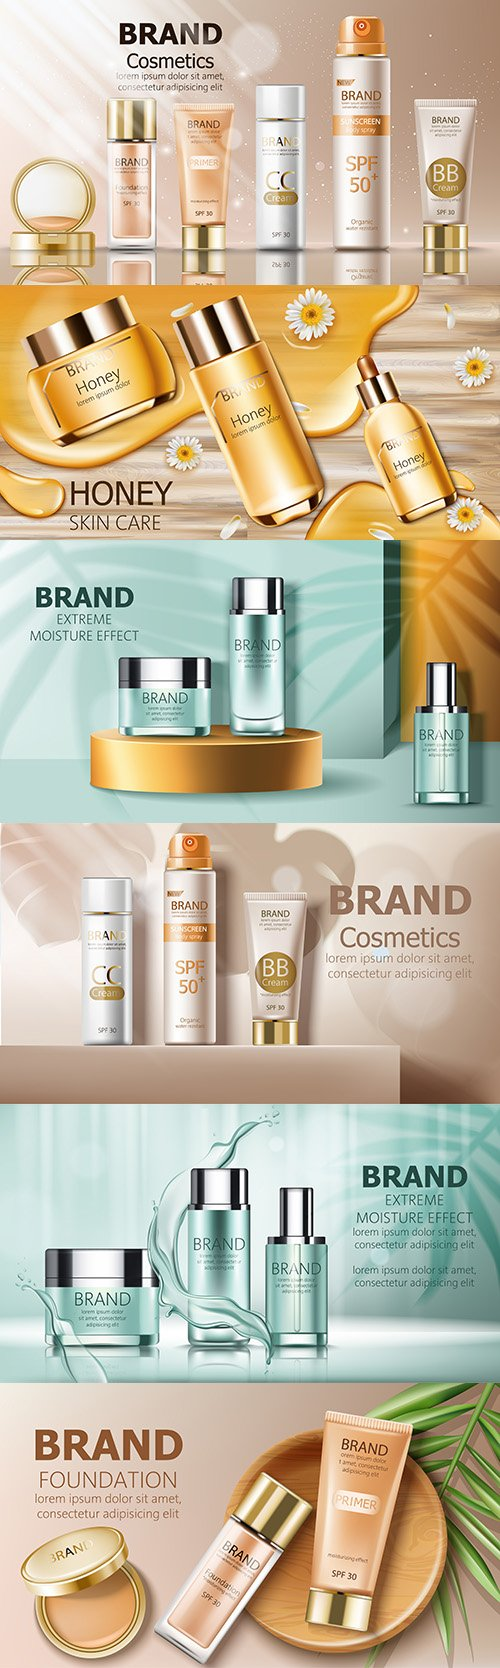 Body sunscreen and cosmetic containers on golden catwalk